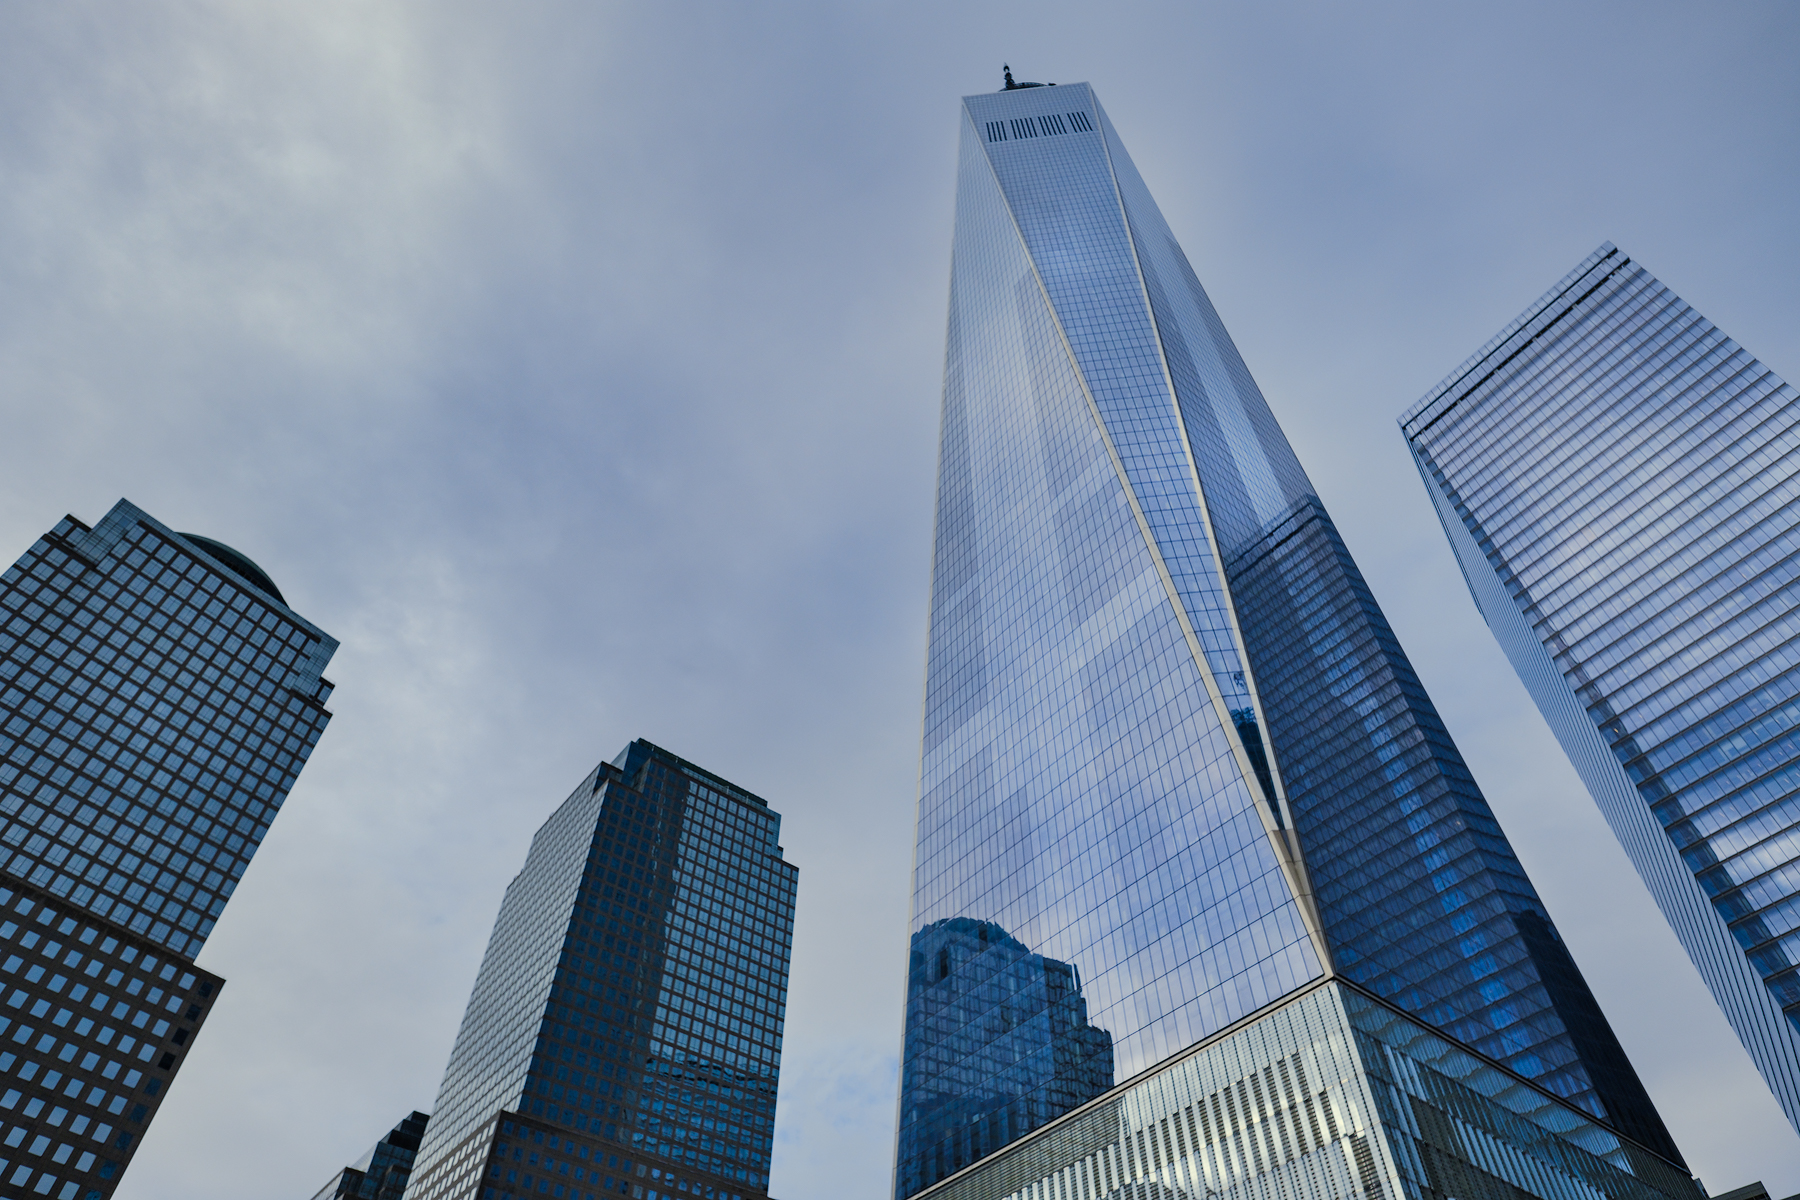 The beautiful blue sky and clouds reflected off of the glass skin of The World Trade Center Tower.